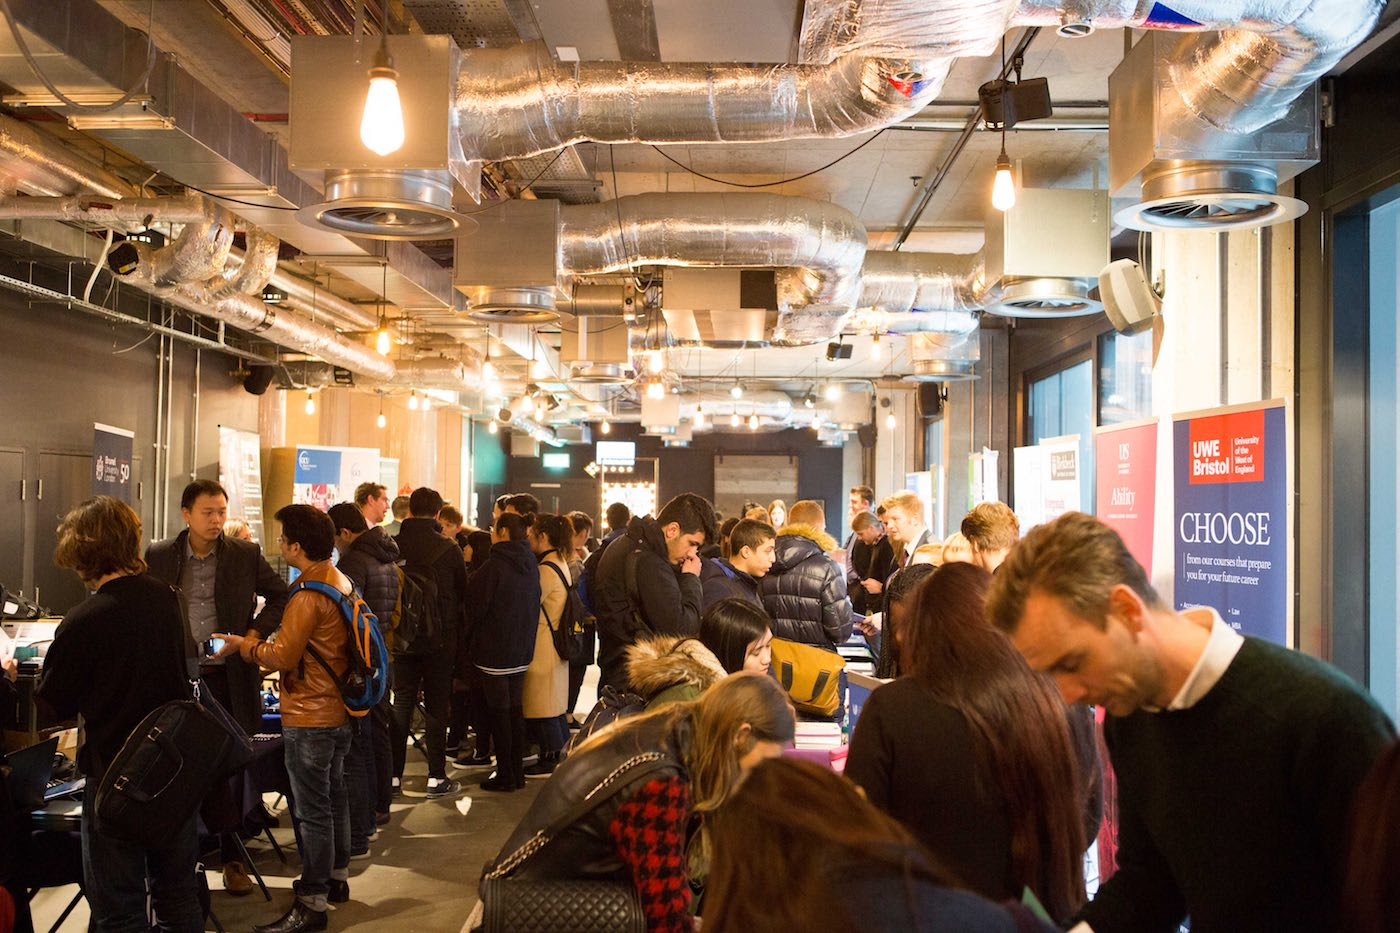 Over 60 universities attend the placement fair